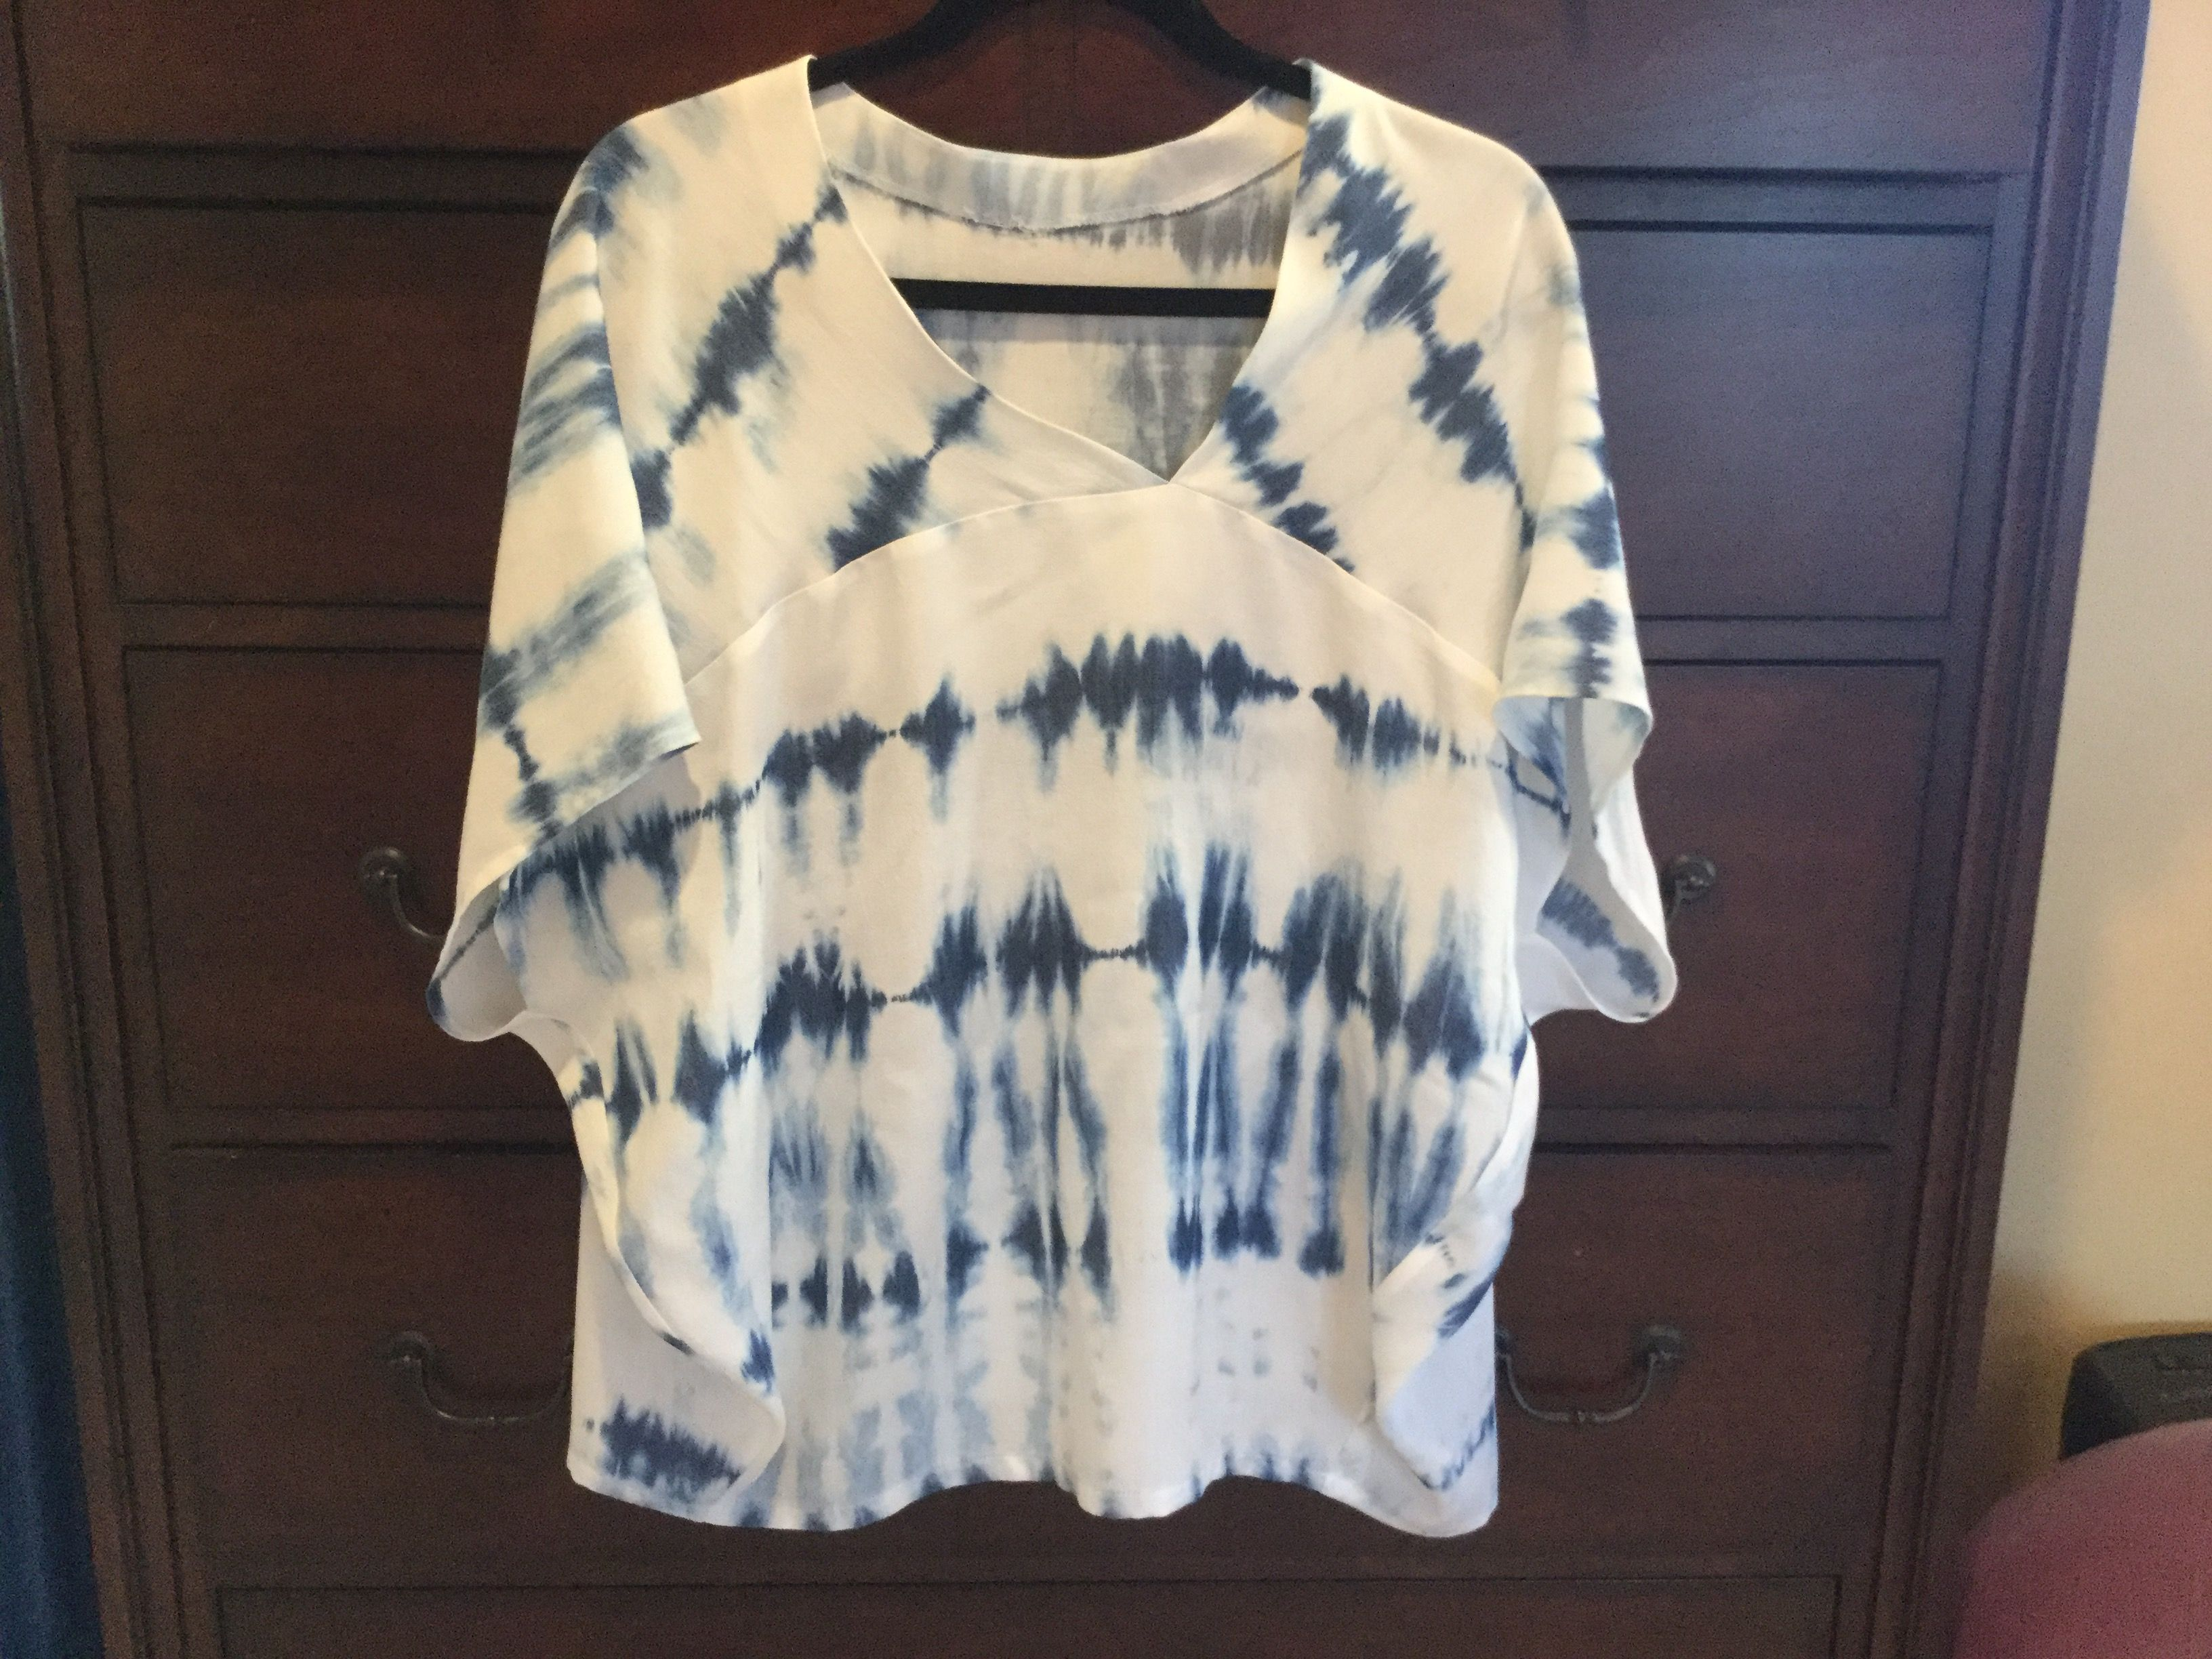 Oversized Top Tops Oversized Top Dyed Tops